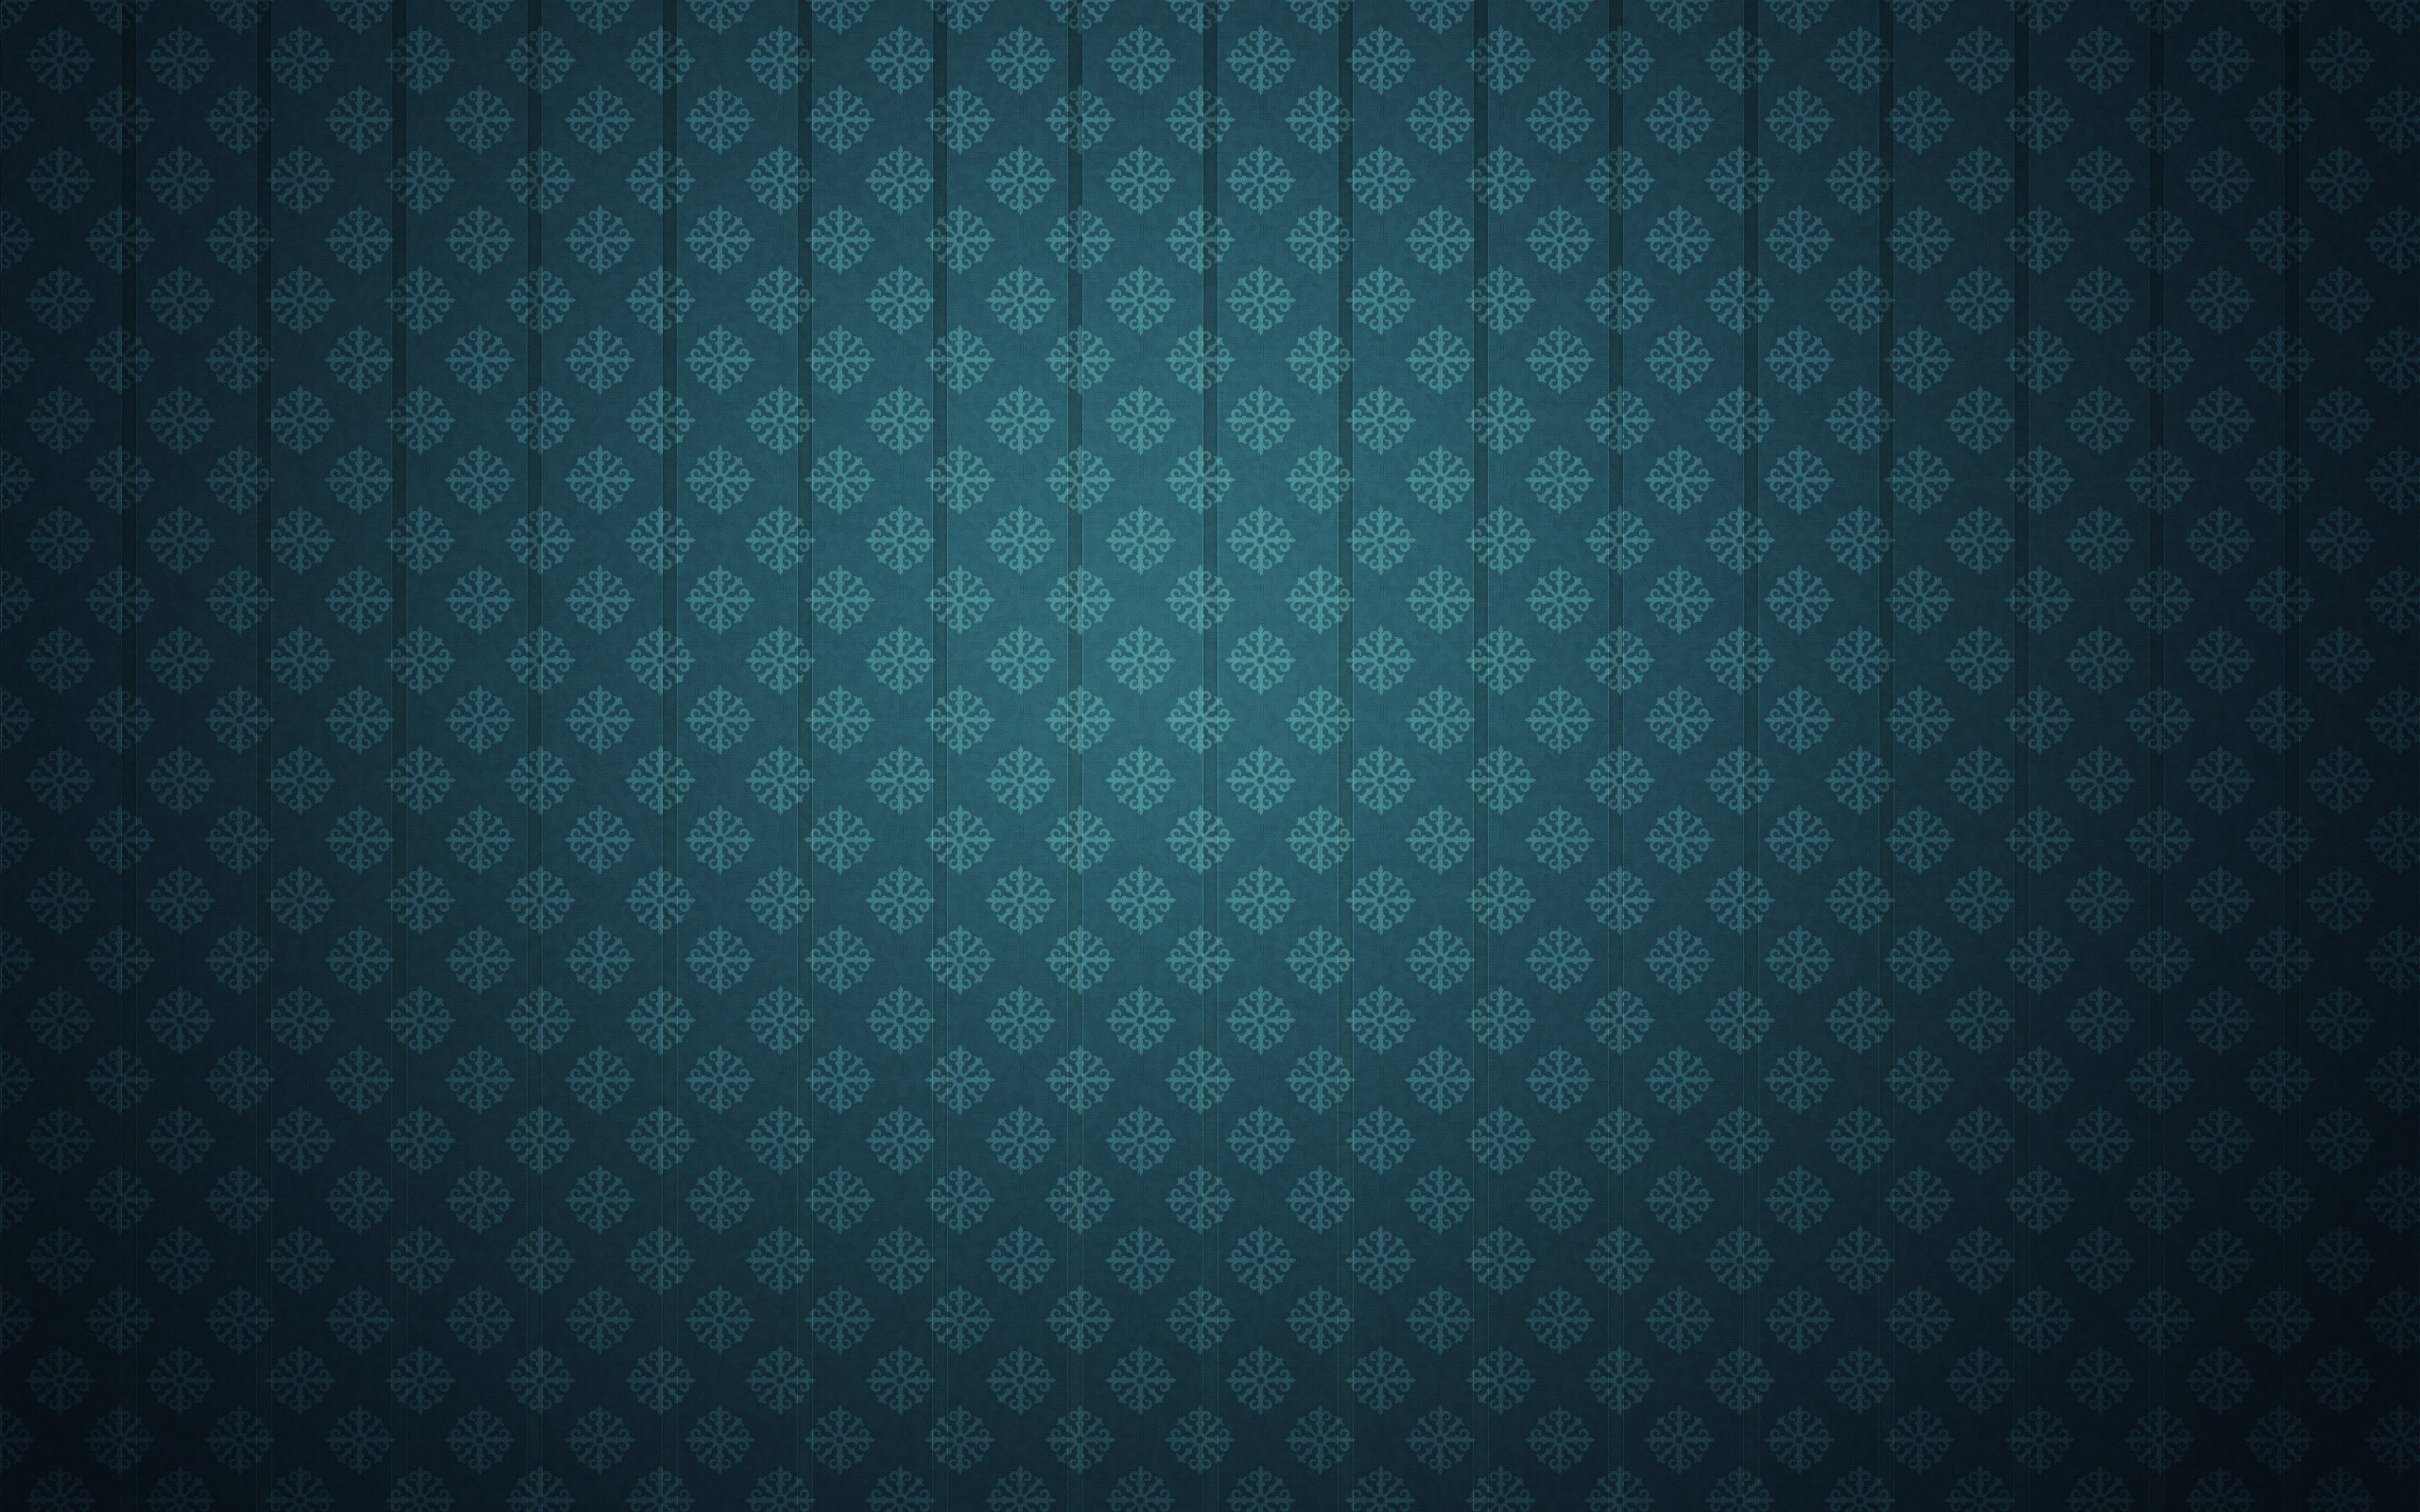 Android Wallpaper Vintage Style